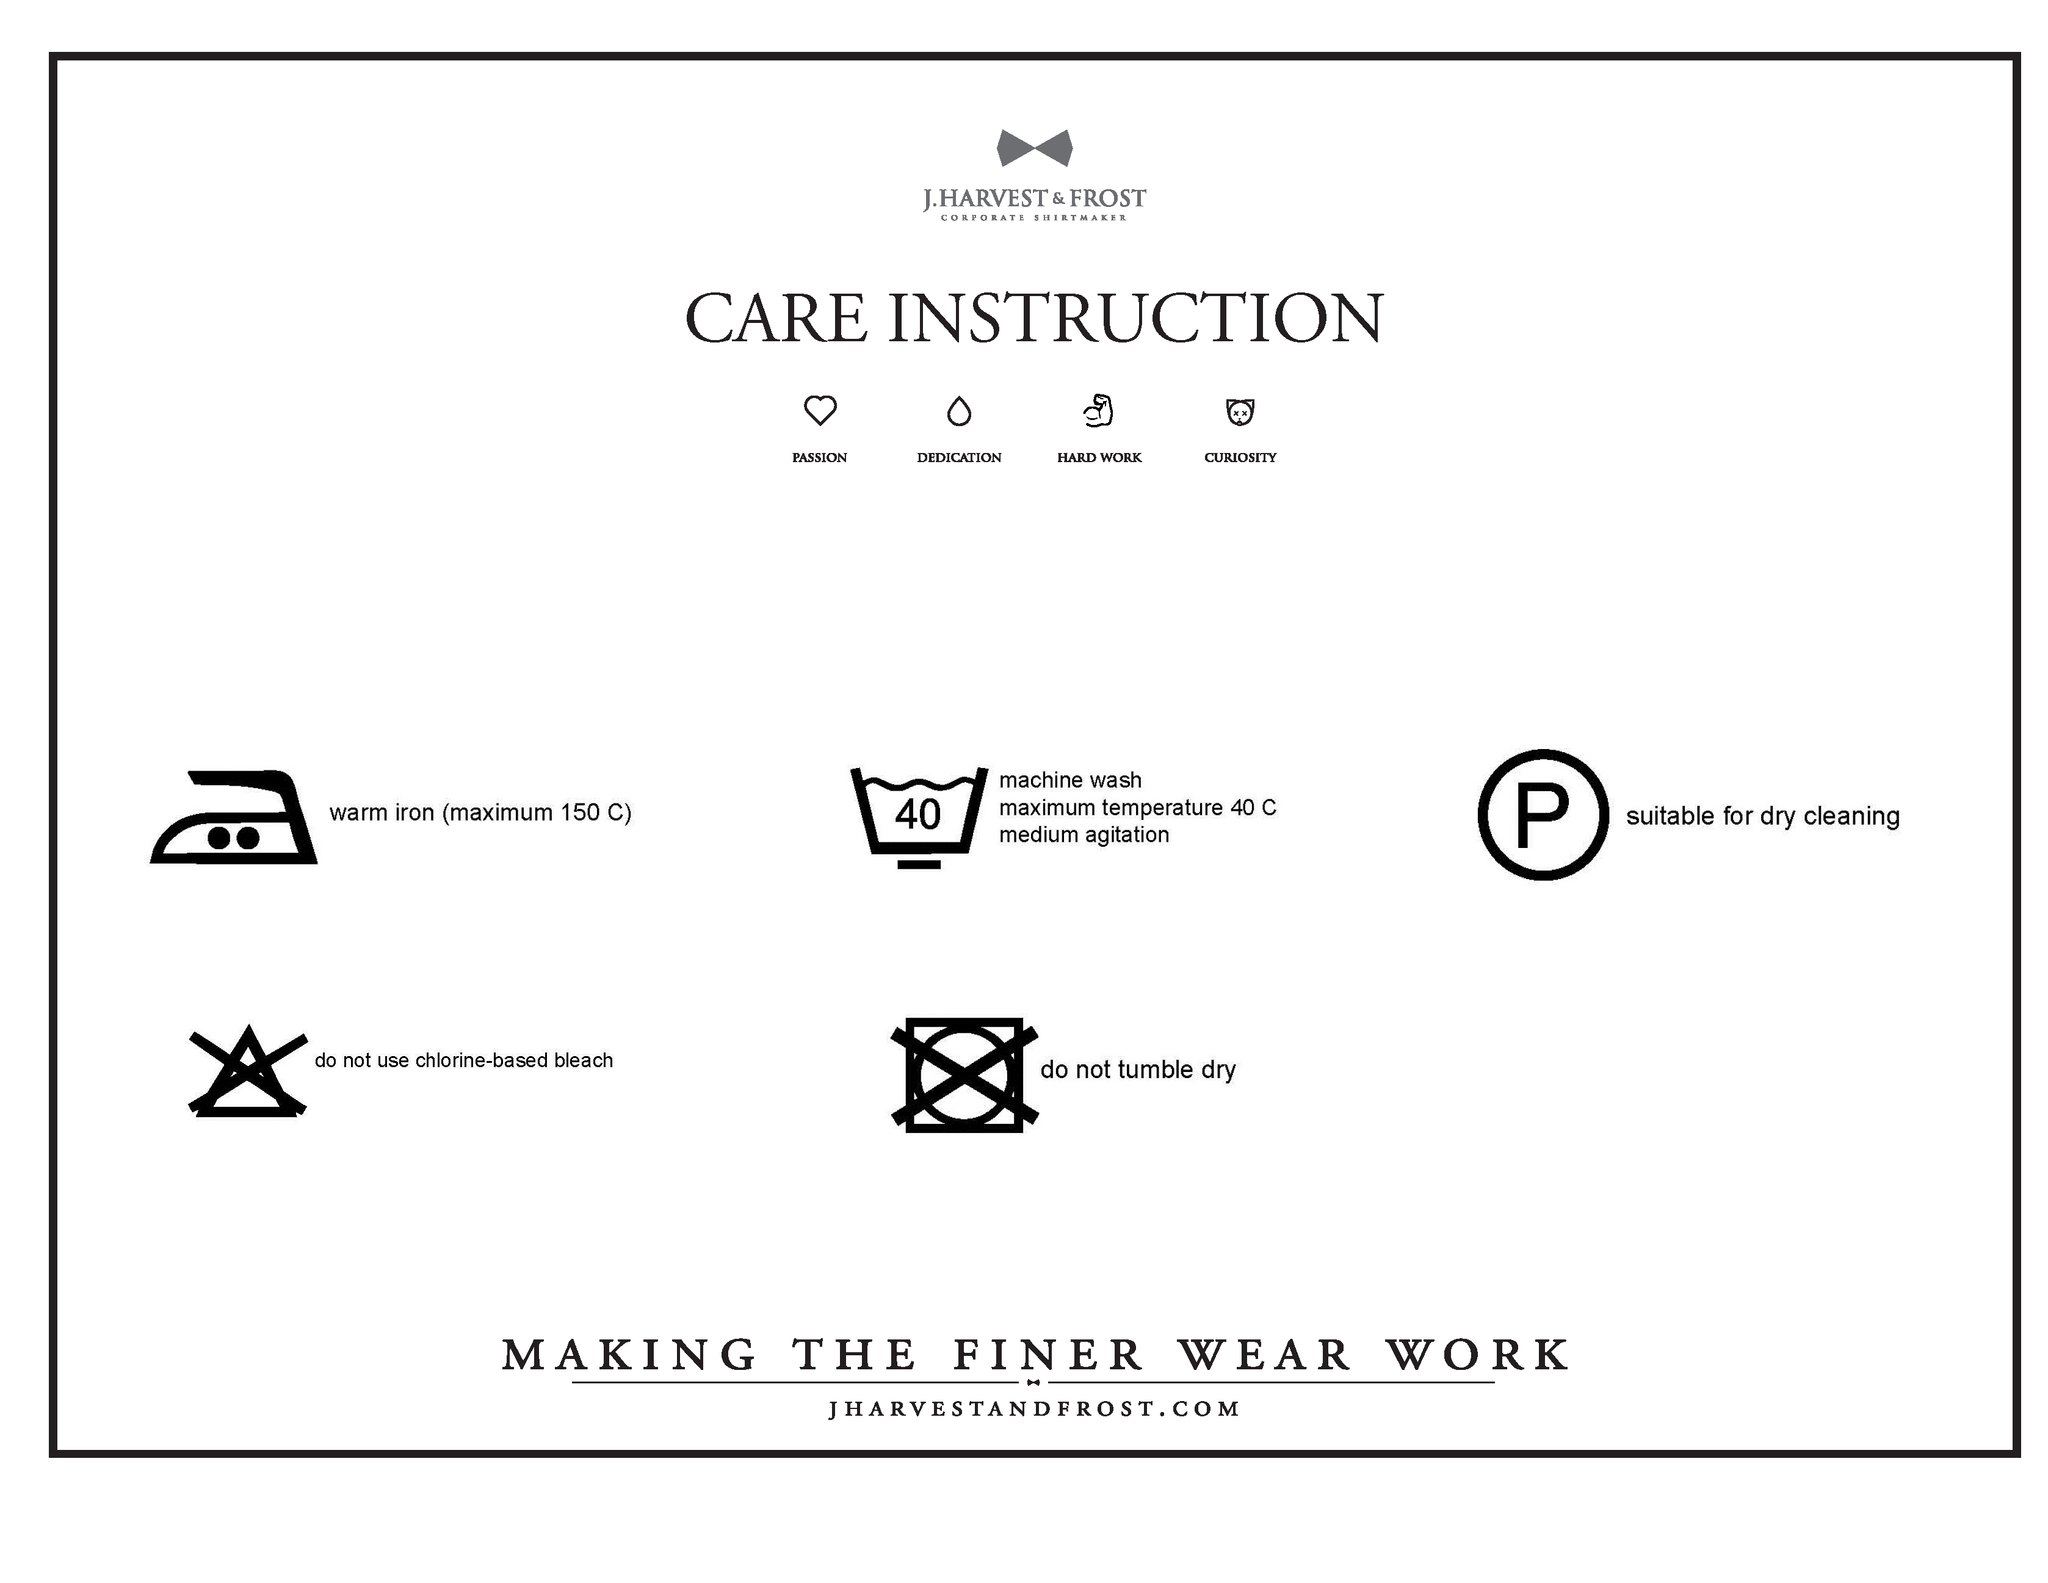 Care Instructions J Harvest Frost Corporate Shirtmaker